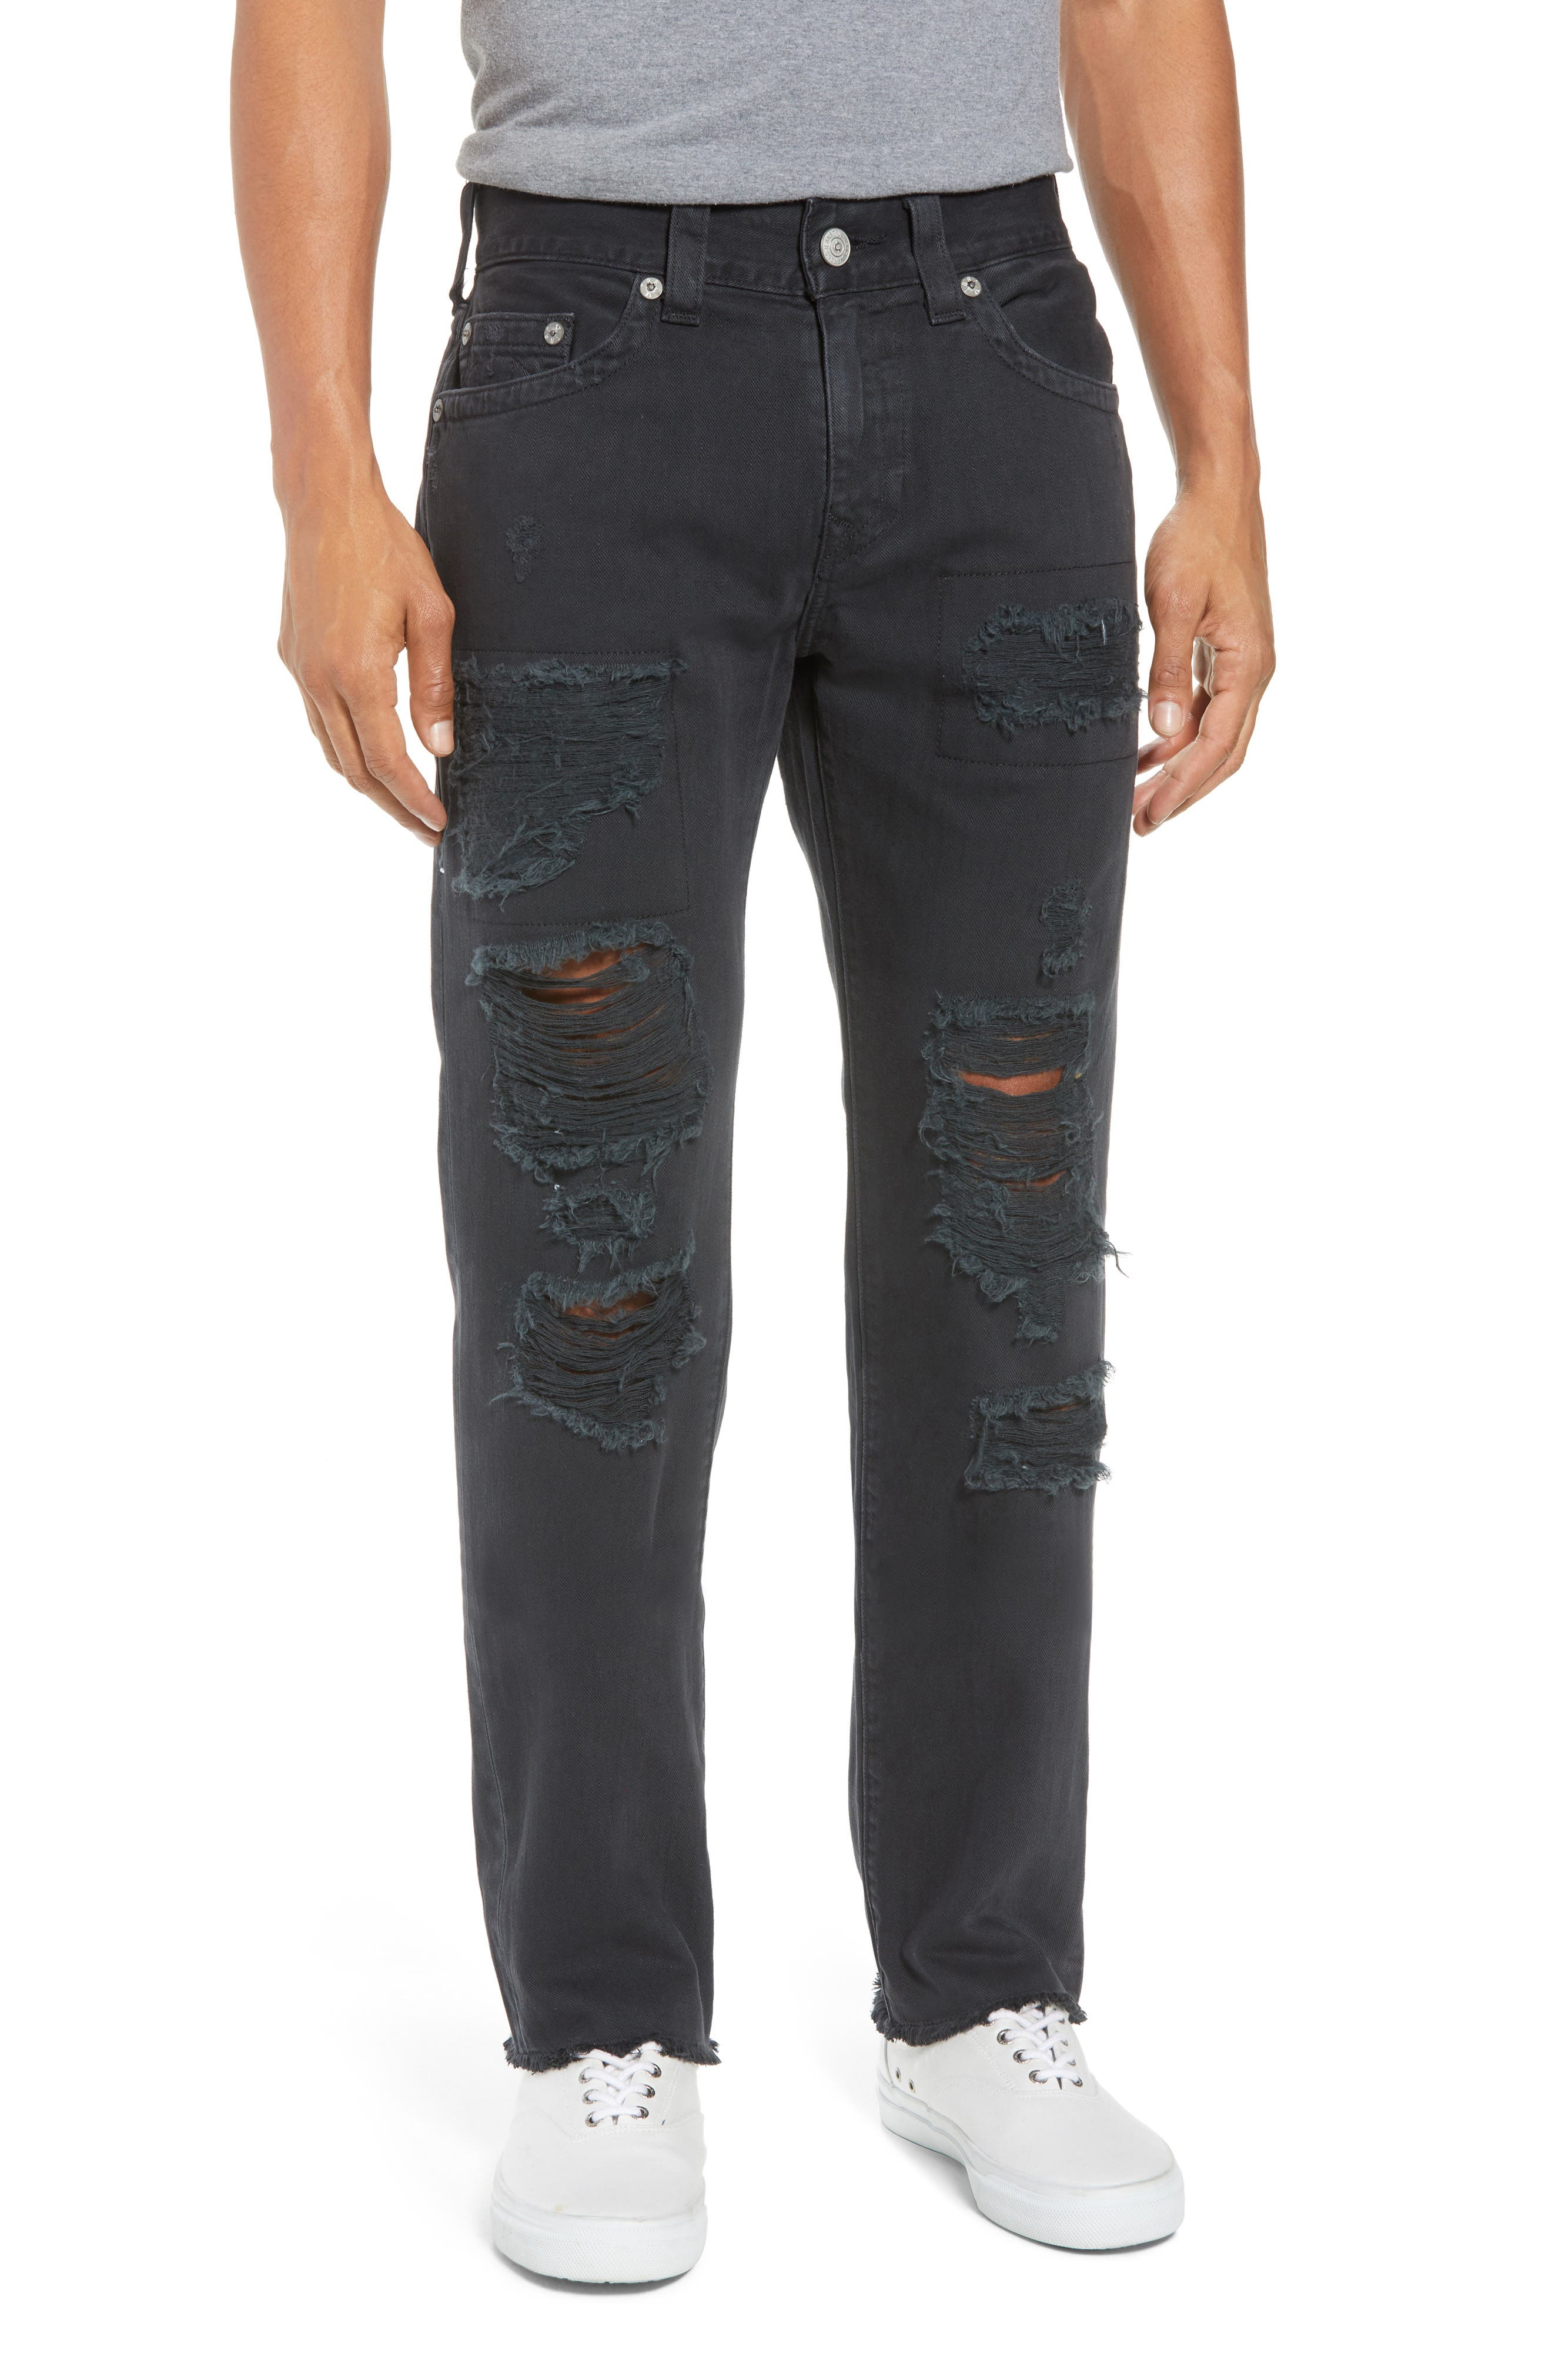 True Religion Brand Jeans Rocco Skinny Fit Jeans (Black Volcanic Ash)